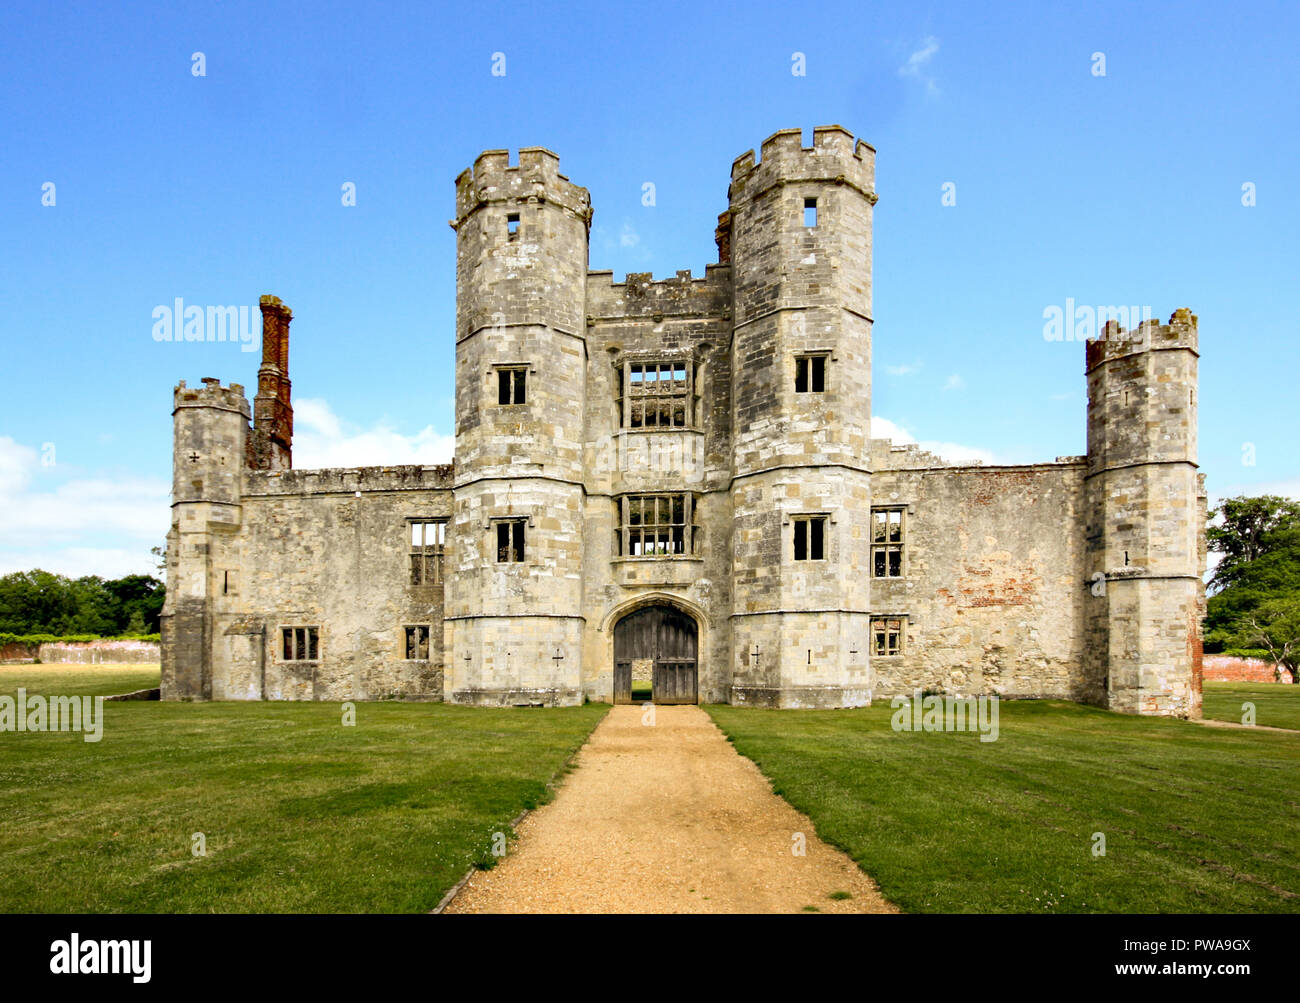 Medieval Titchfield Abbey founded in 1222 an English heritage site located in the village of Titchfield near Fareham in Hampshire, England UK - Stock Image